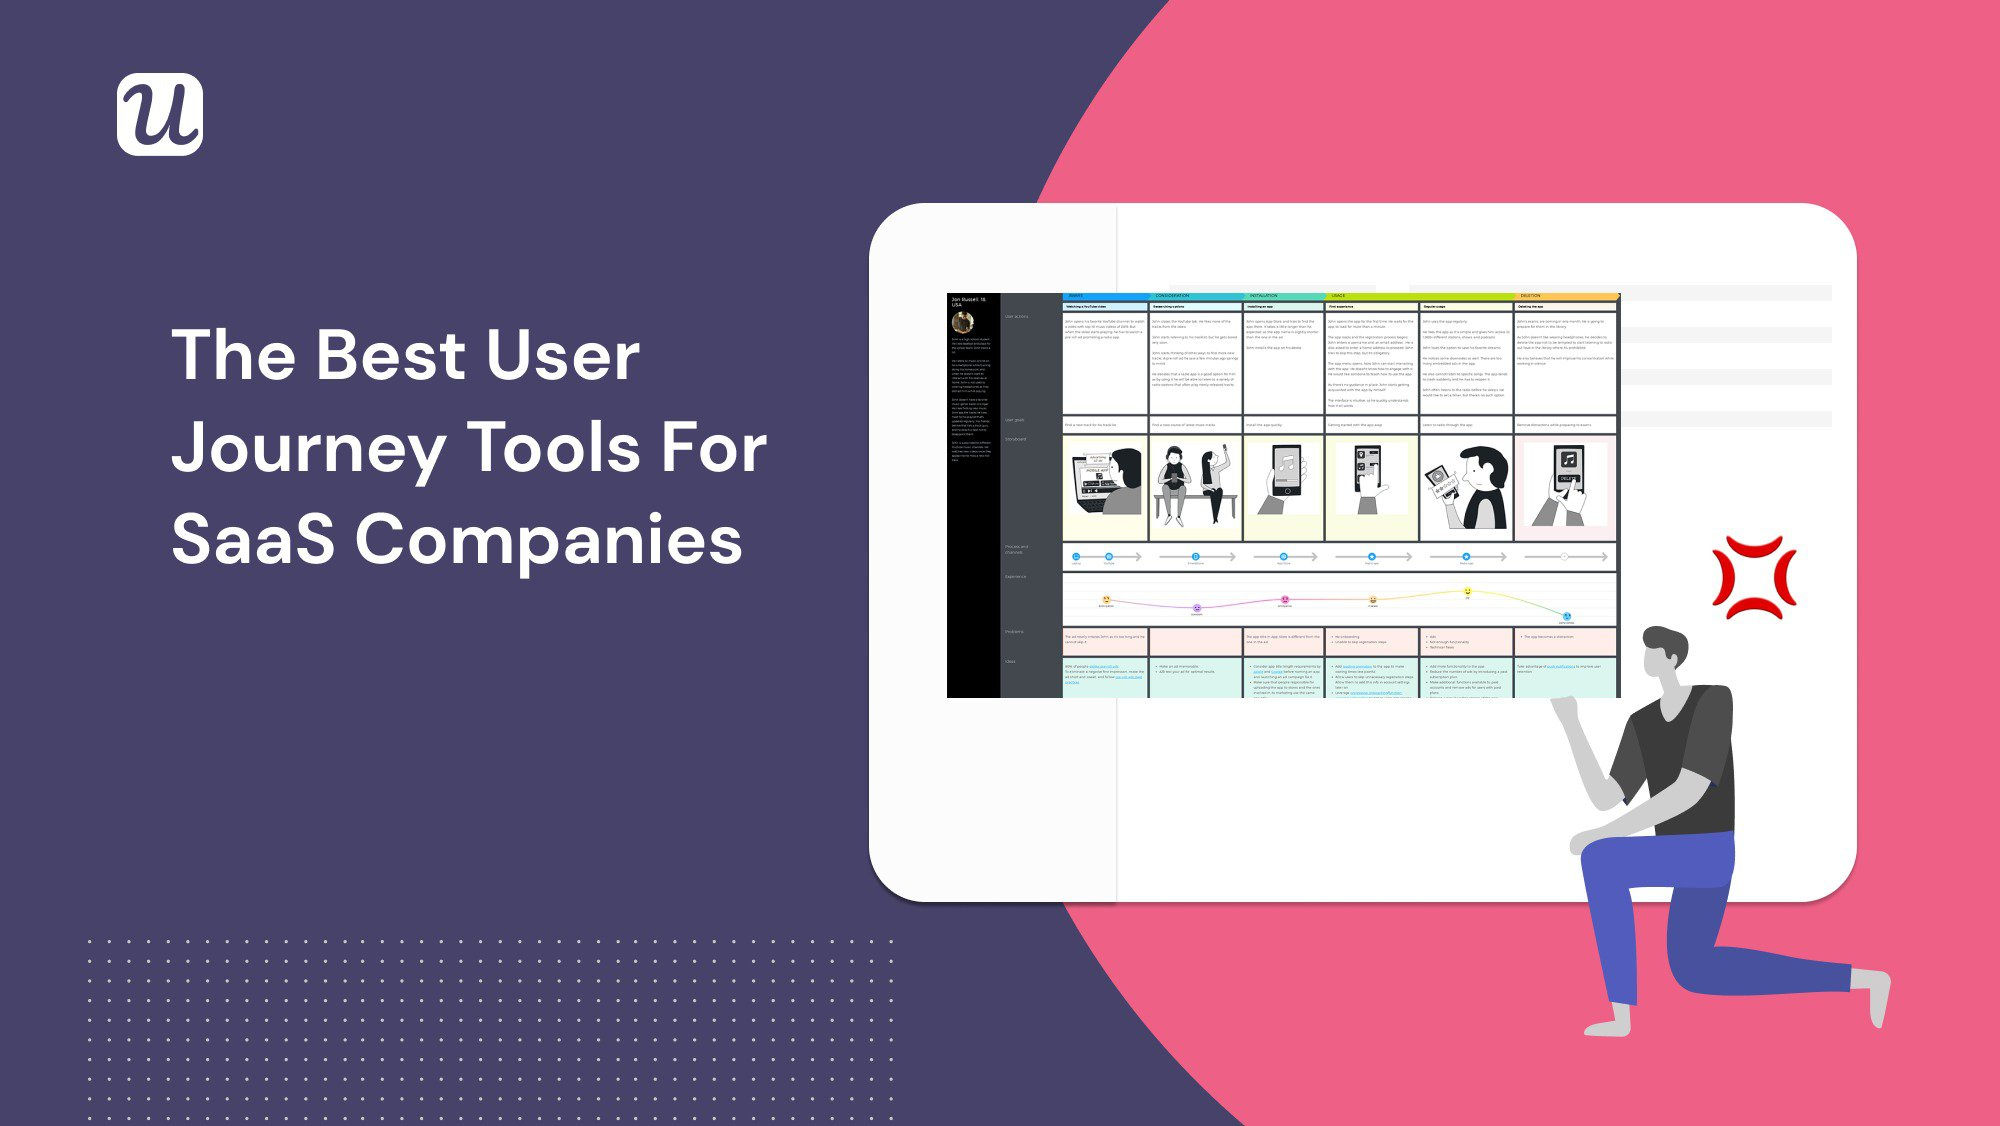 The Best User Journey Tools for SaaS Companies